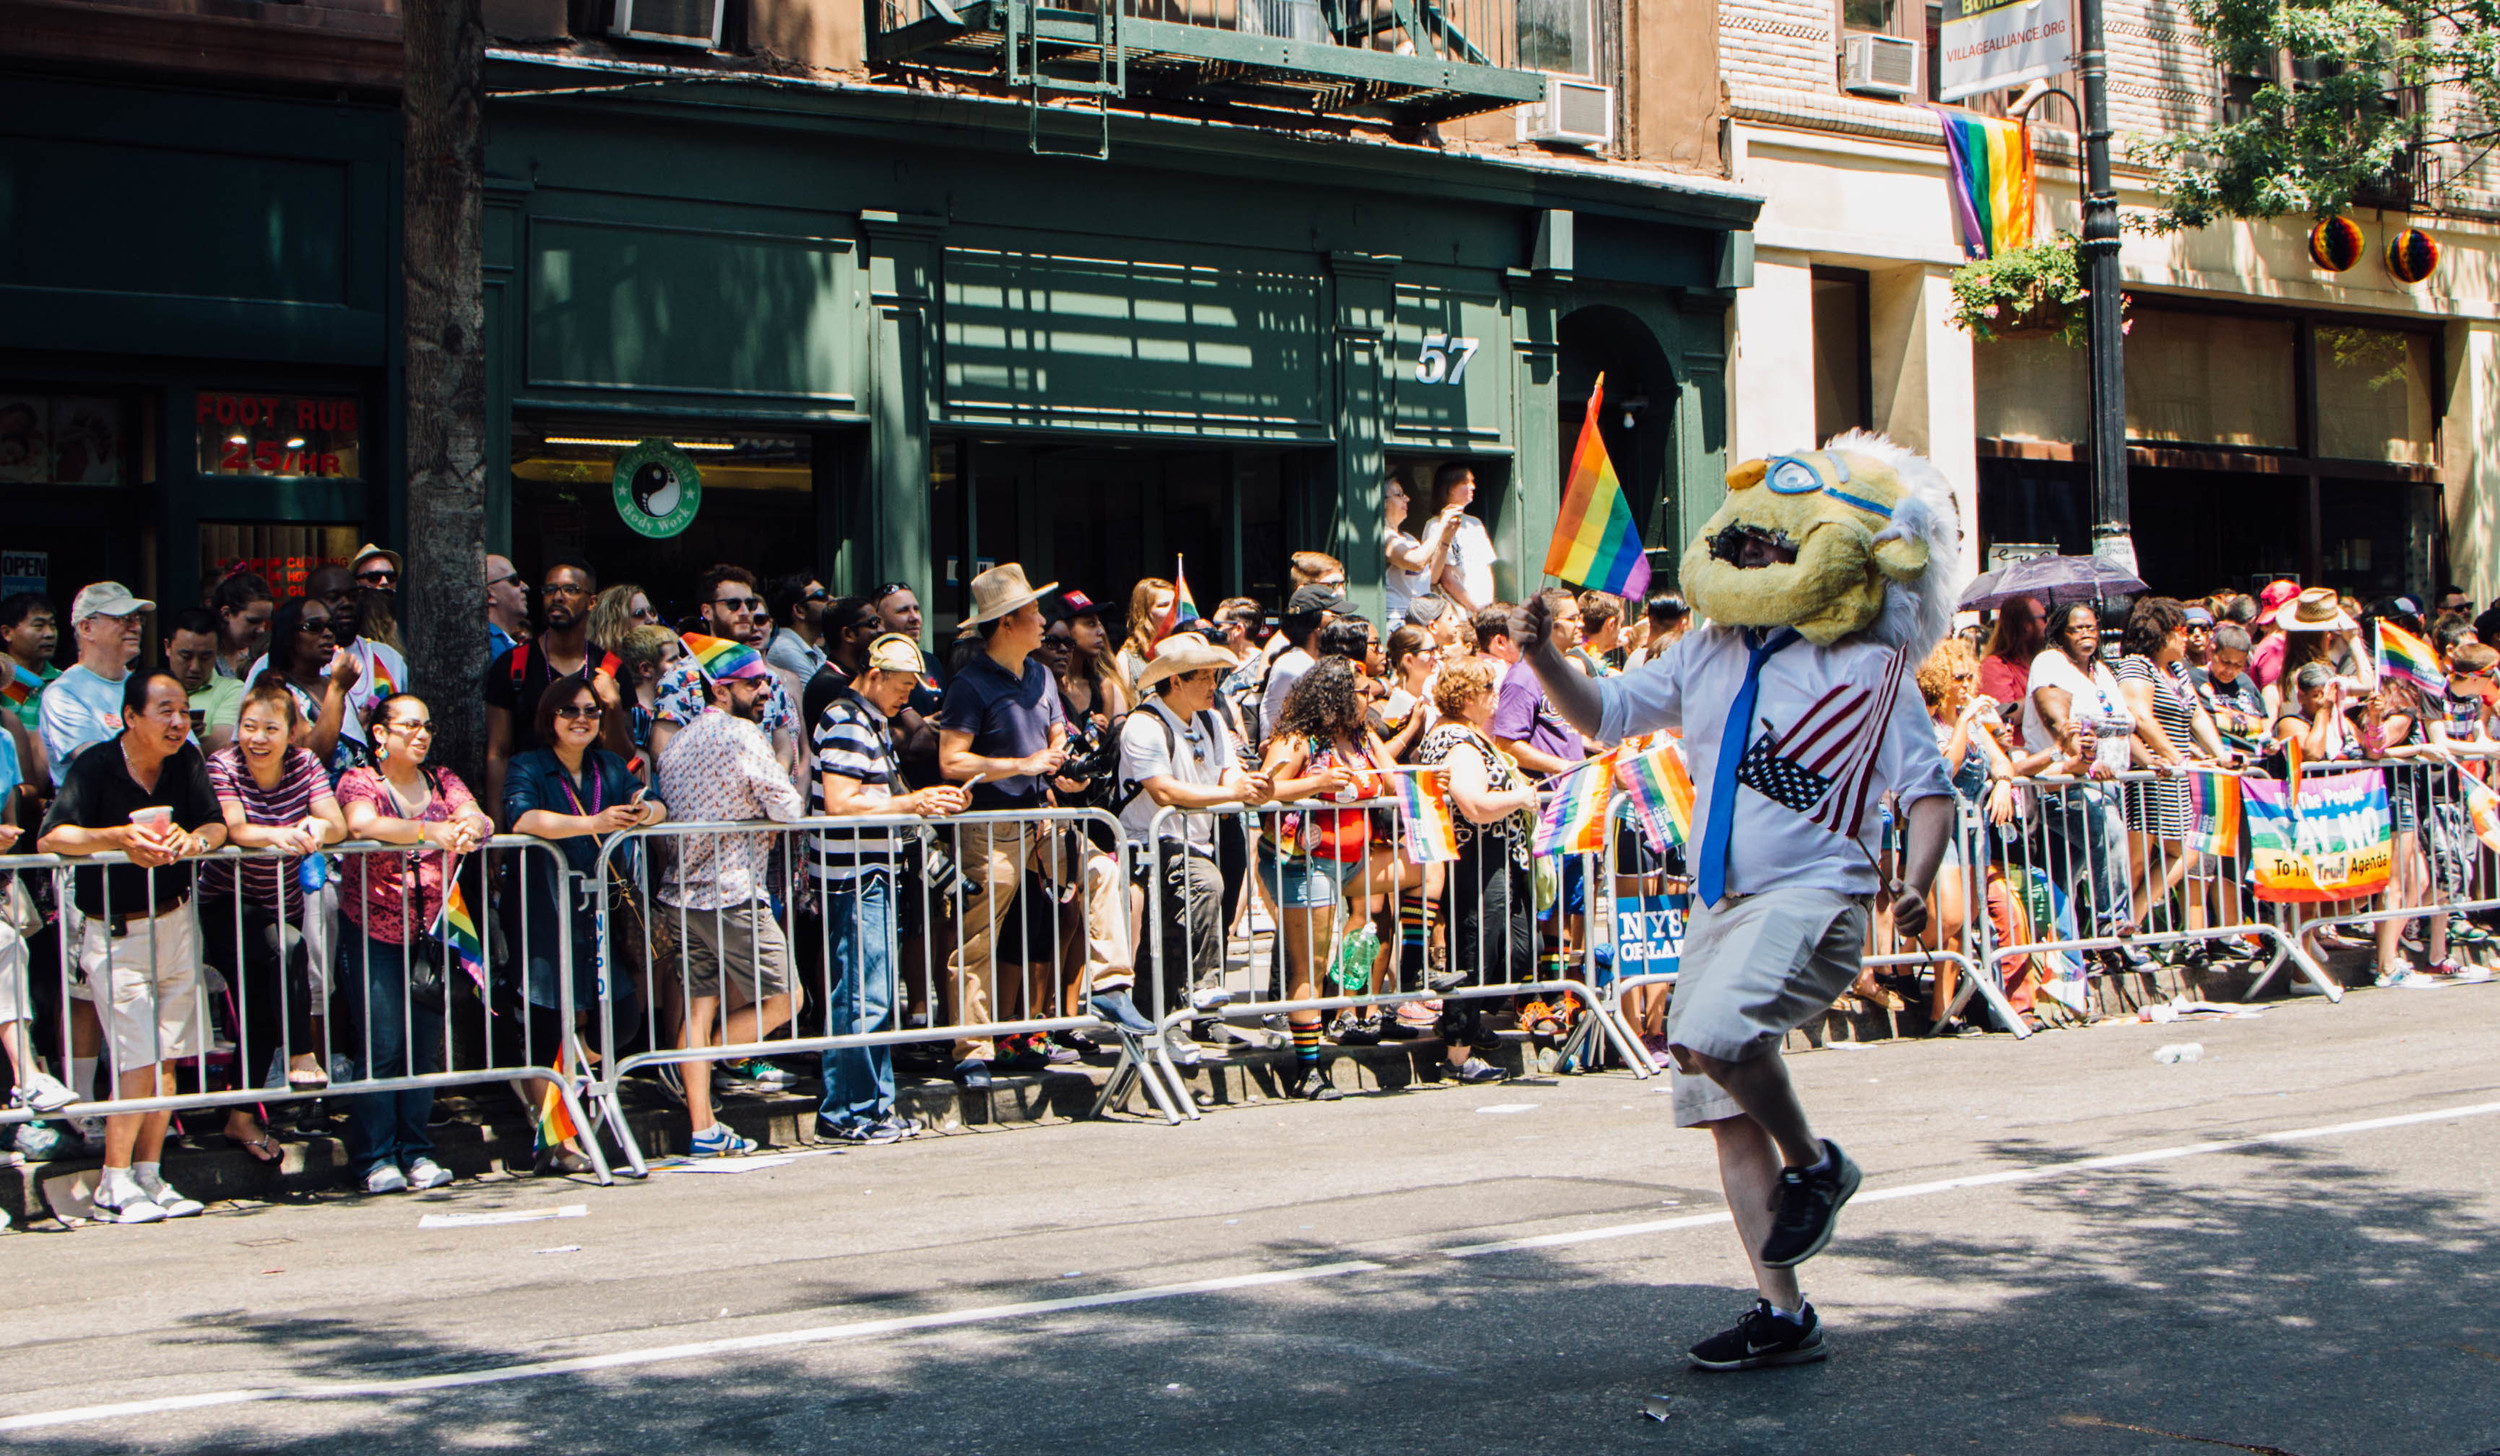 A Bernie Sanders mascot parades down 5th Avenue.